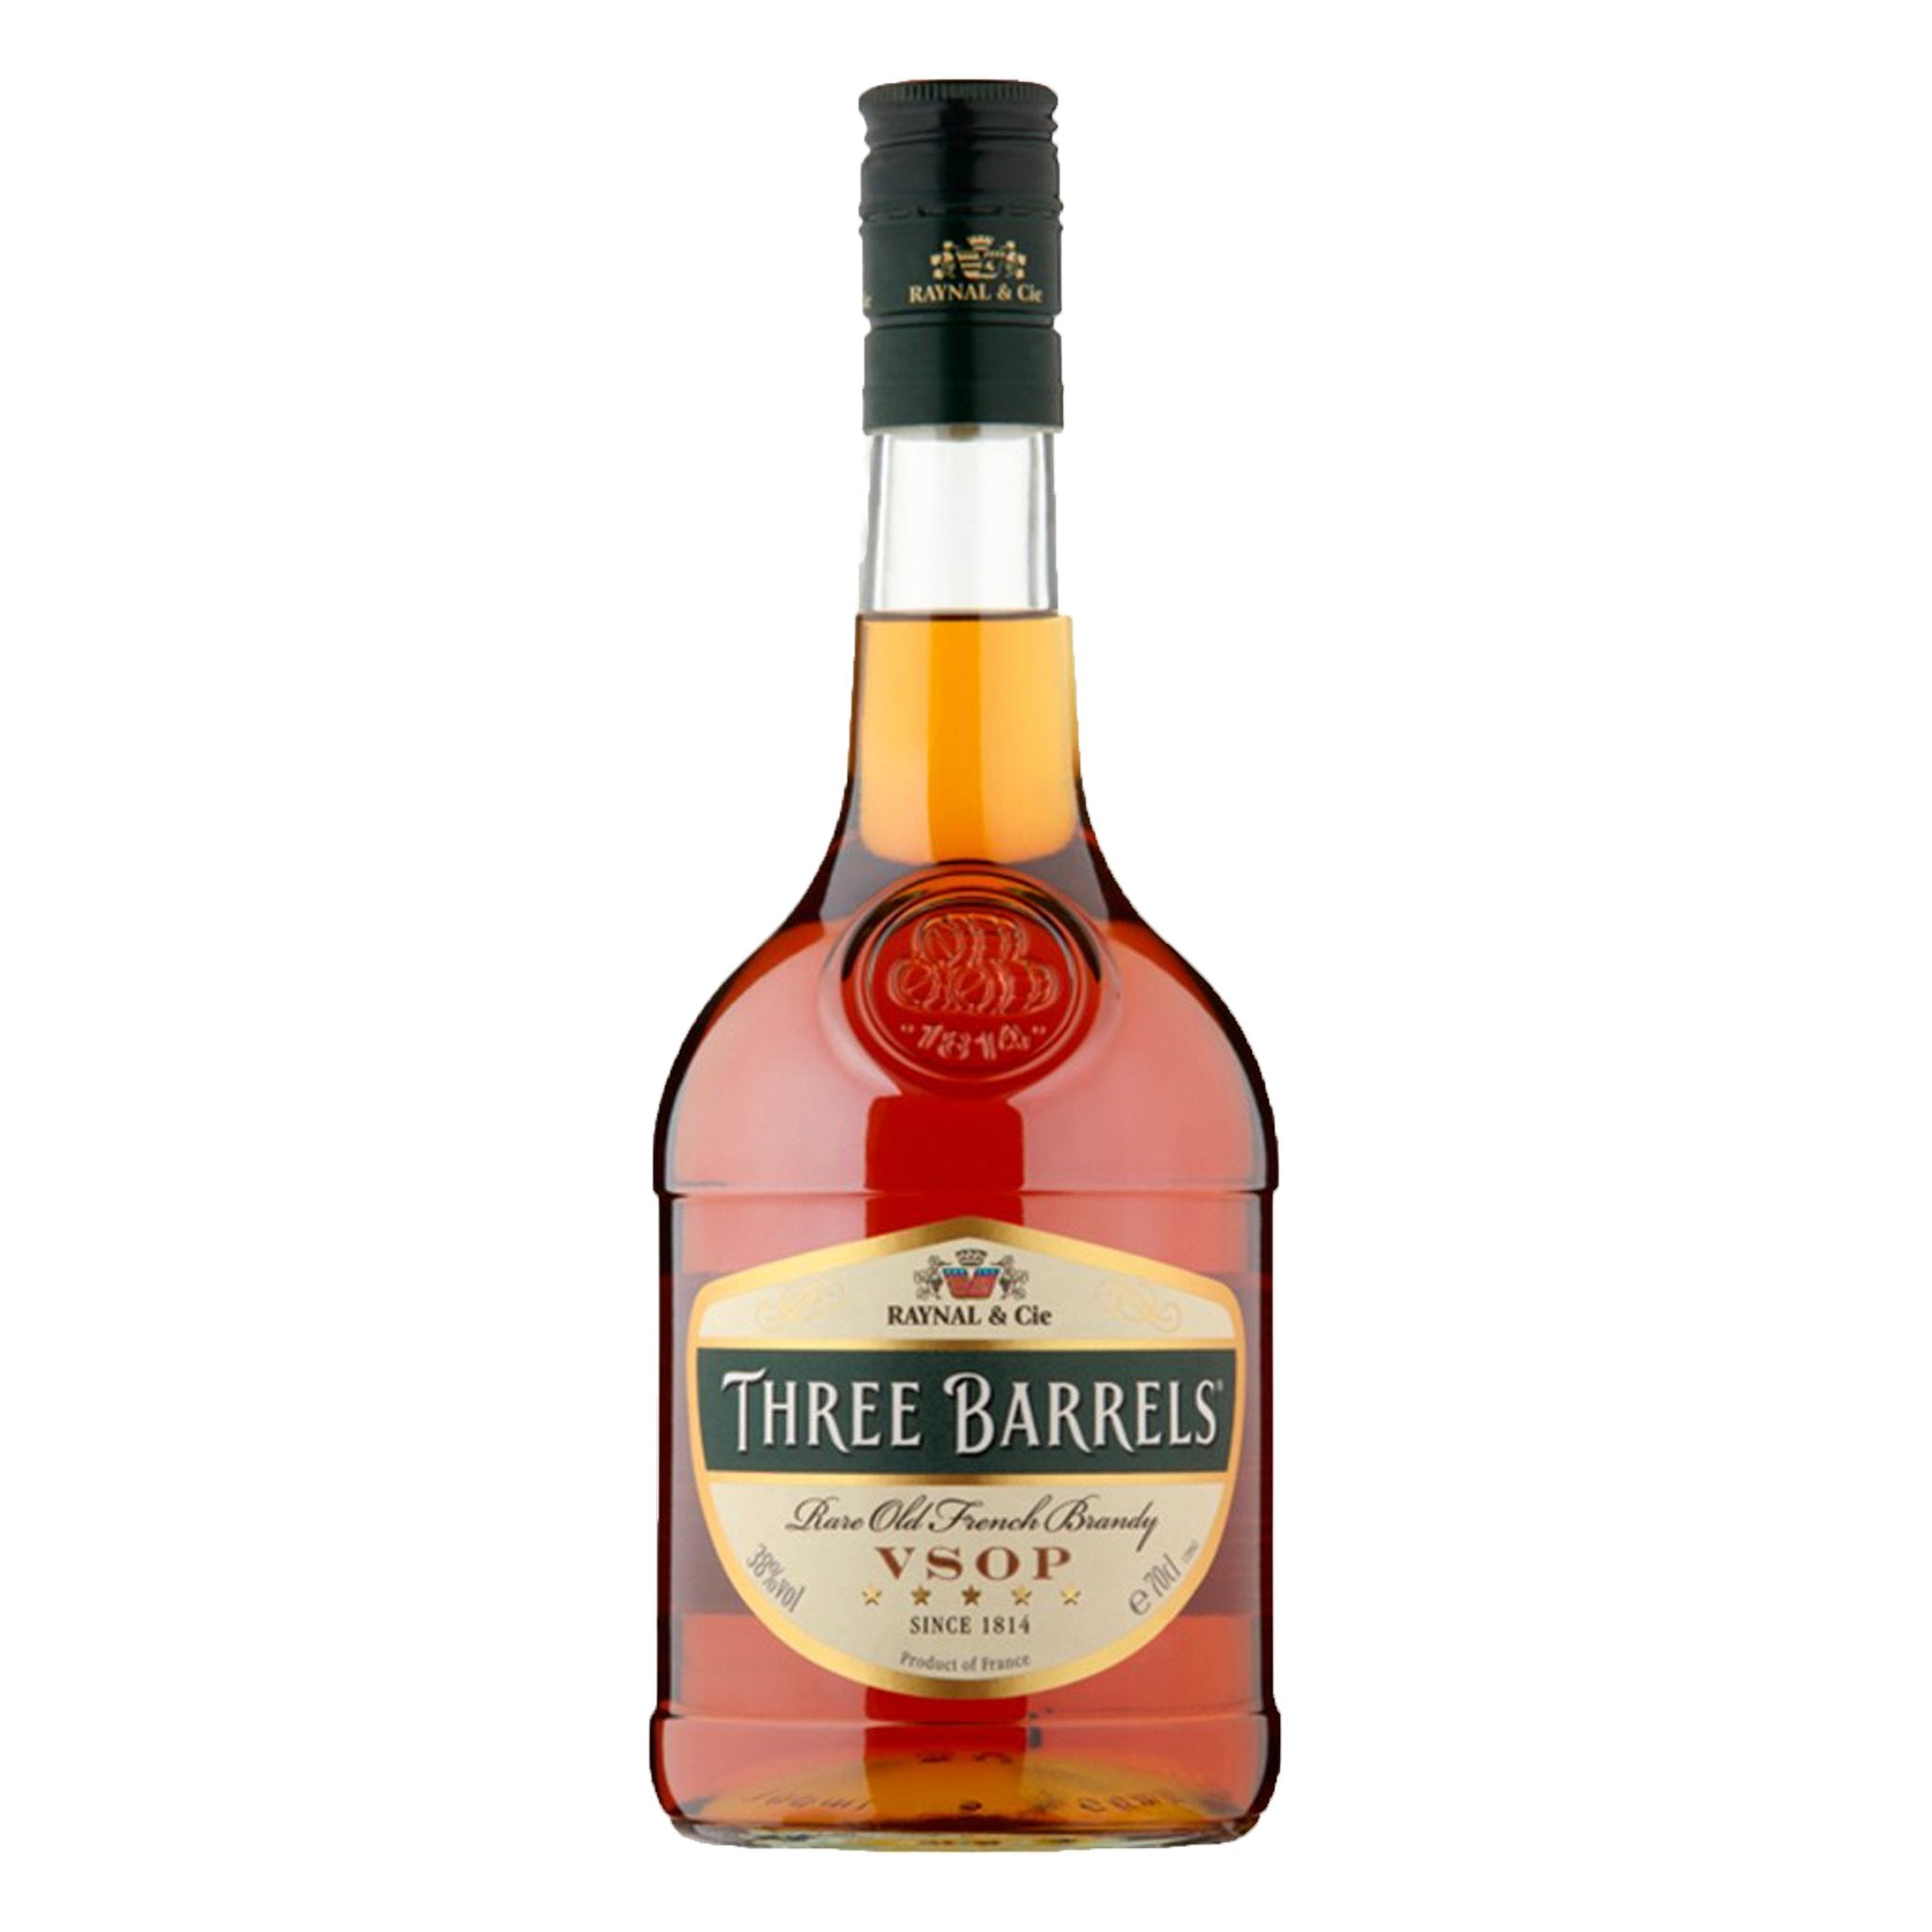 Three Barrels Rare Old French Brandy VSOP 70cl, Alcoholic Beverages by Drinks Shop